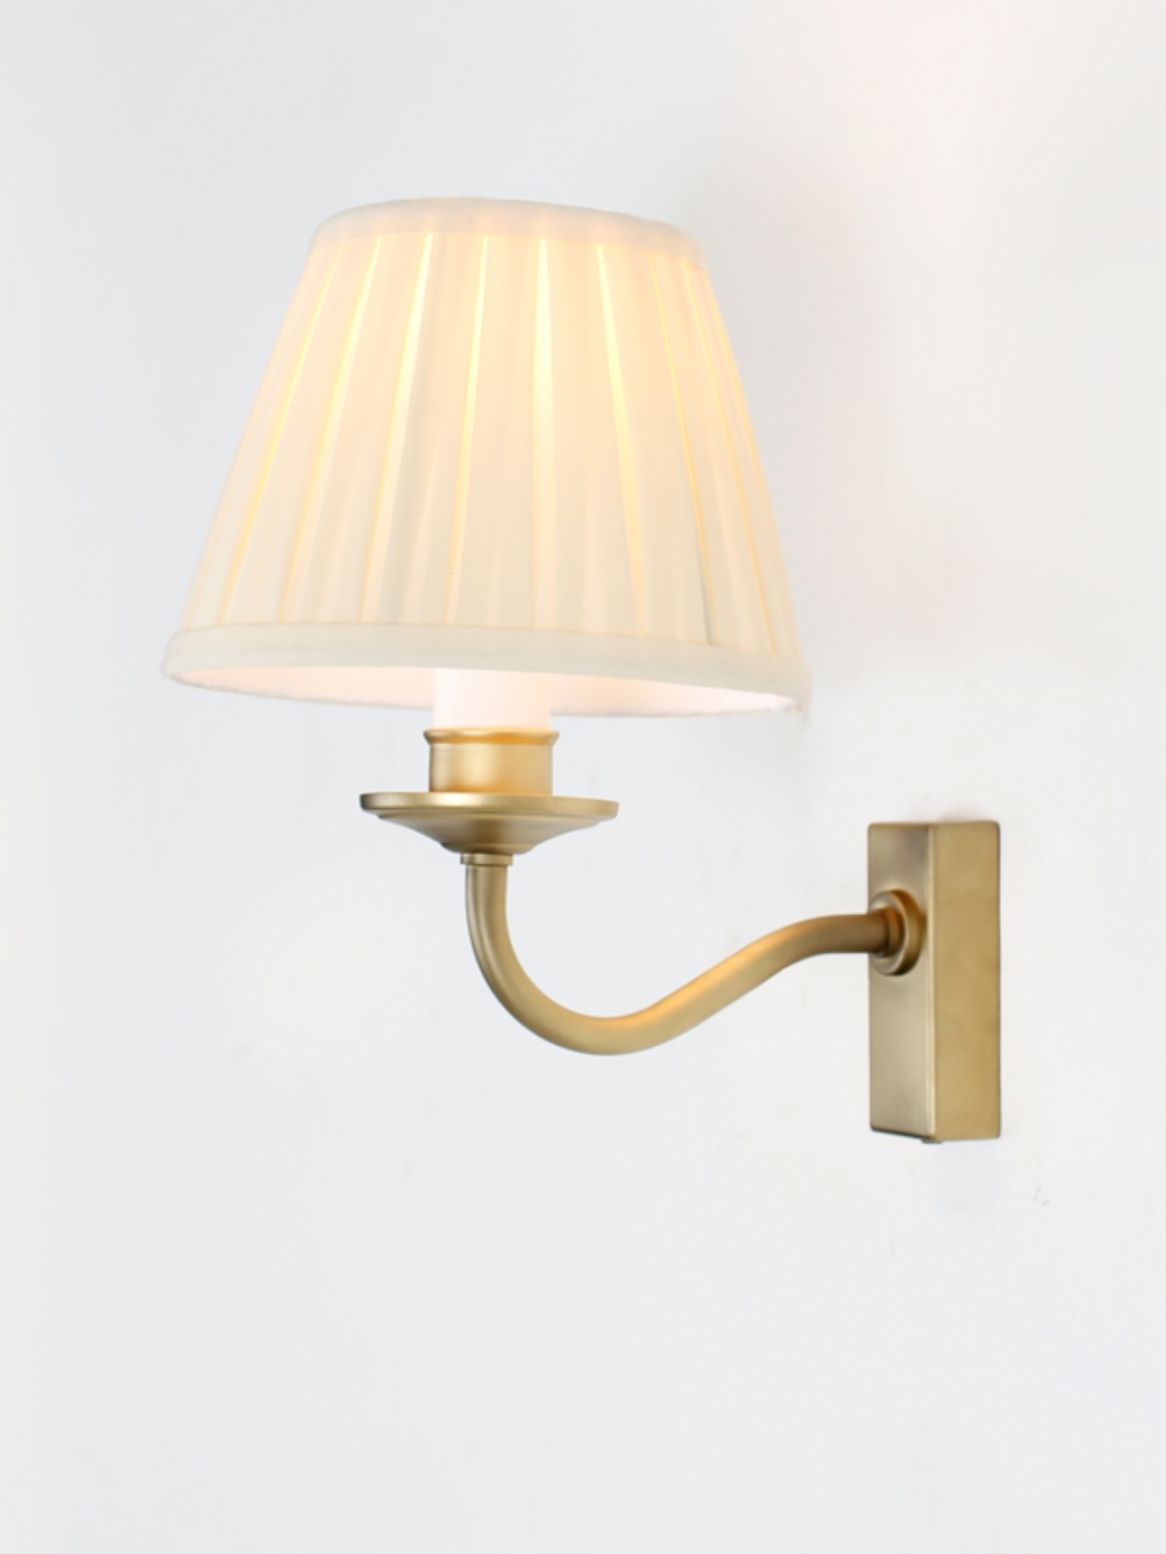 Brass effect wall light with a classic brass wall box finished with brass effect wall light with a classic brass wall box finished with tapered cream cone shade aloadofball Images